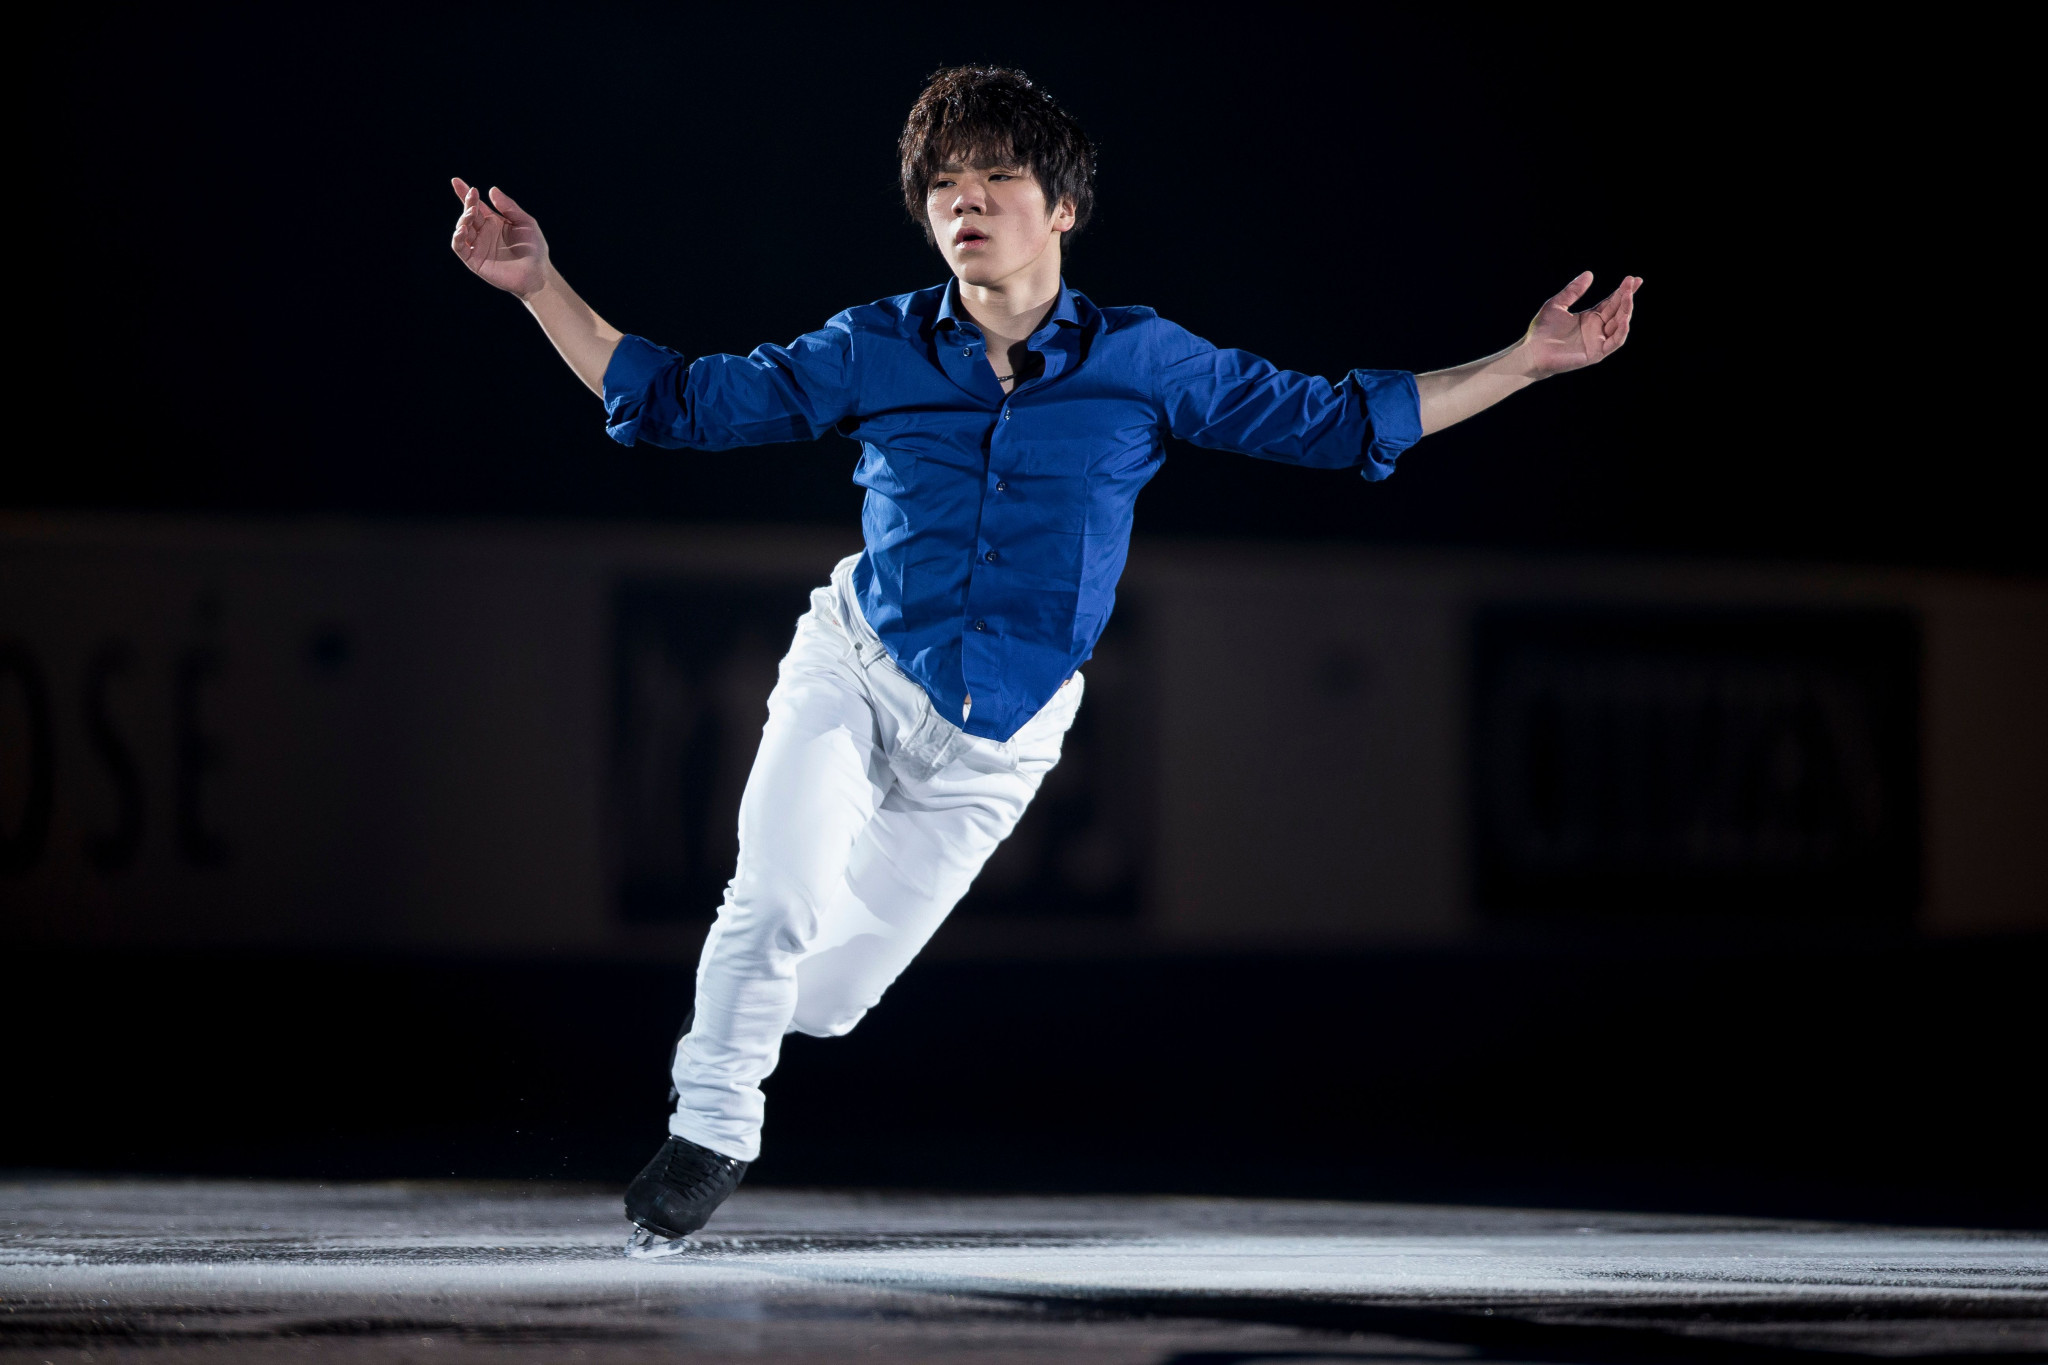 World Championships silver medallist Shoma Uno of Japan is another skater hoping to secure a place at the season-ending Final ©Getty Images